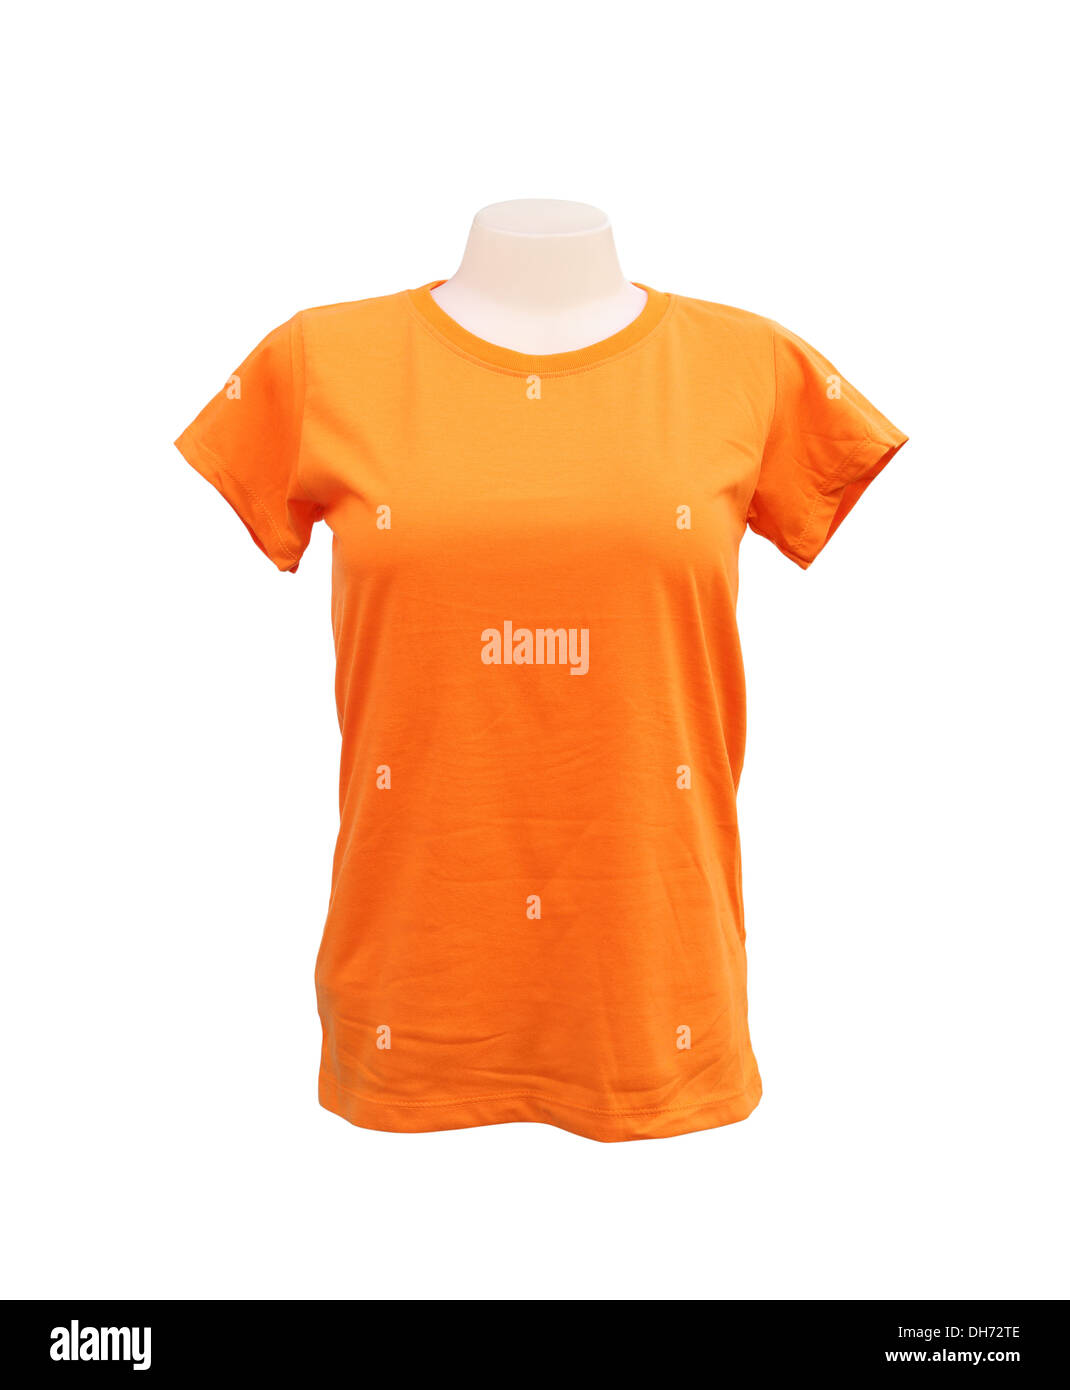 female tshirt template on the mannequin on white background with